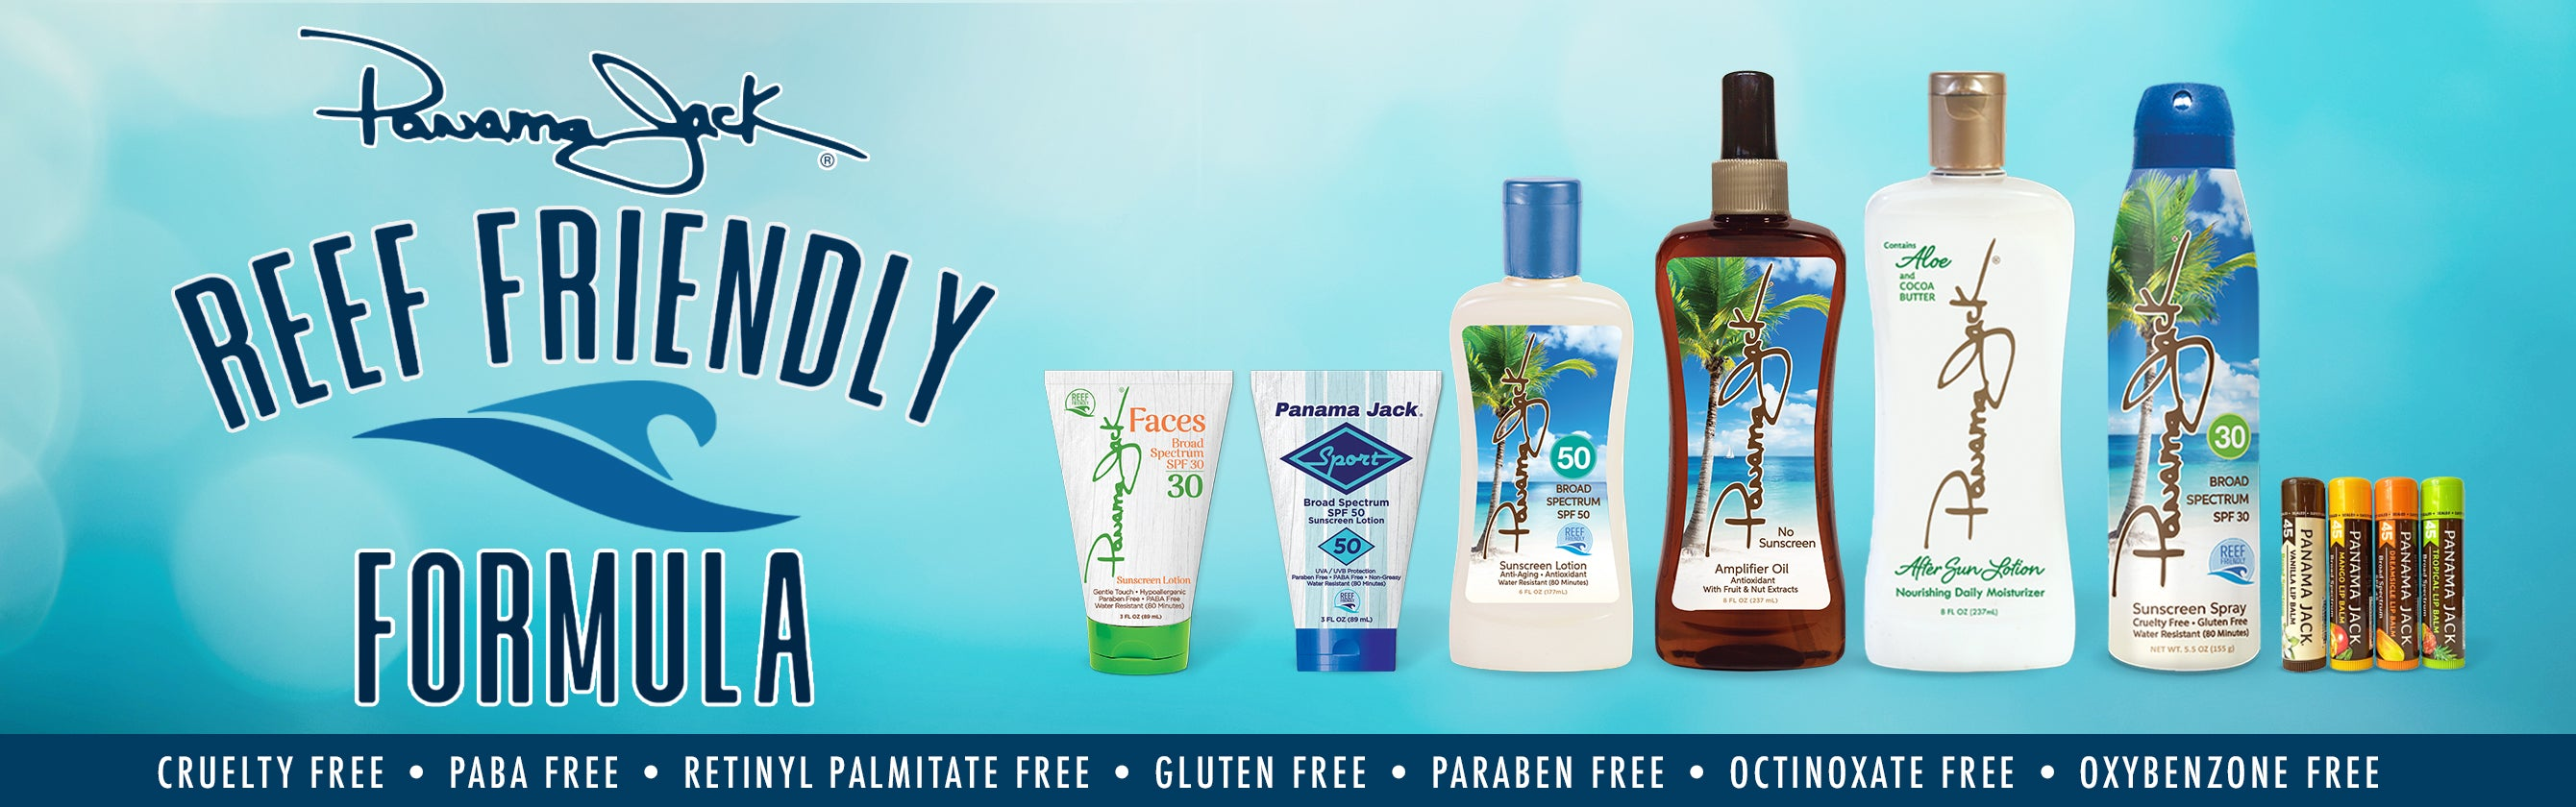 Panama Jack Suntan and Sunscreen Products